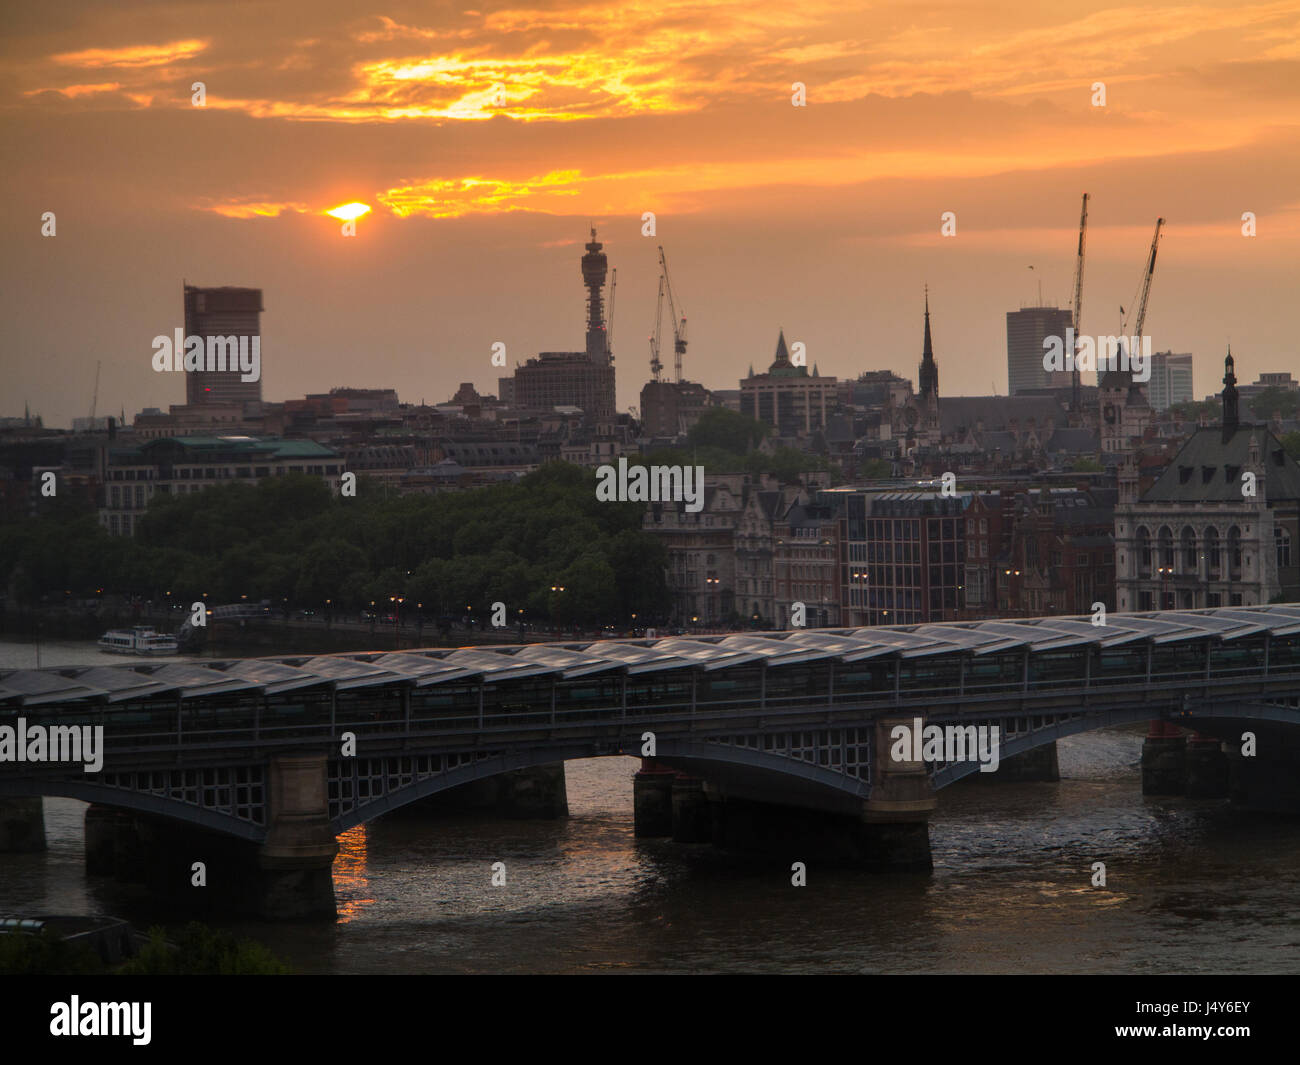 The BT Tower and the Thames - Stock Image